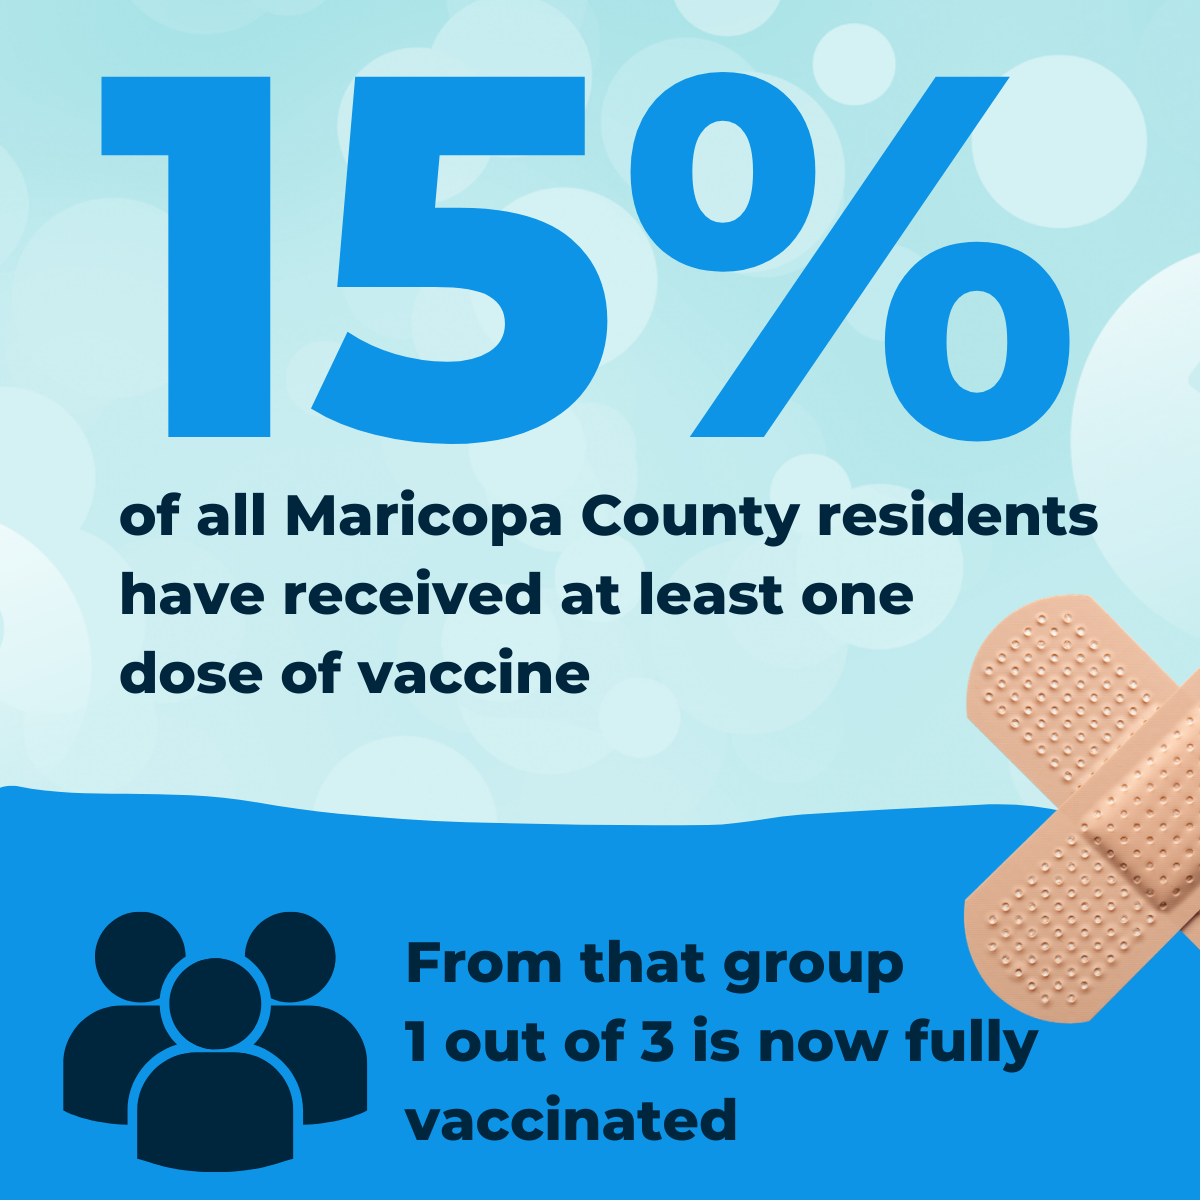 Percentage of Residents Vaccinated